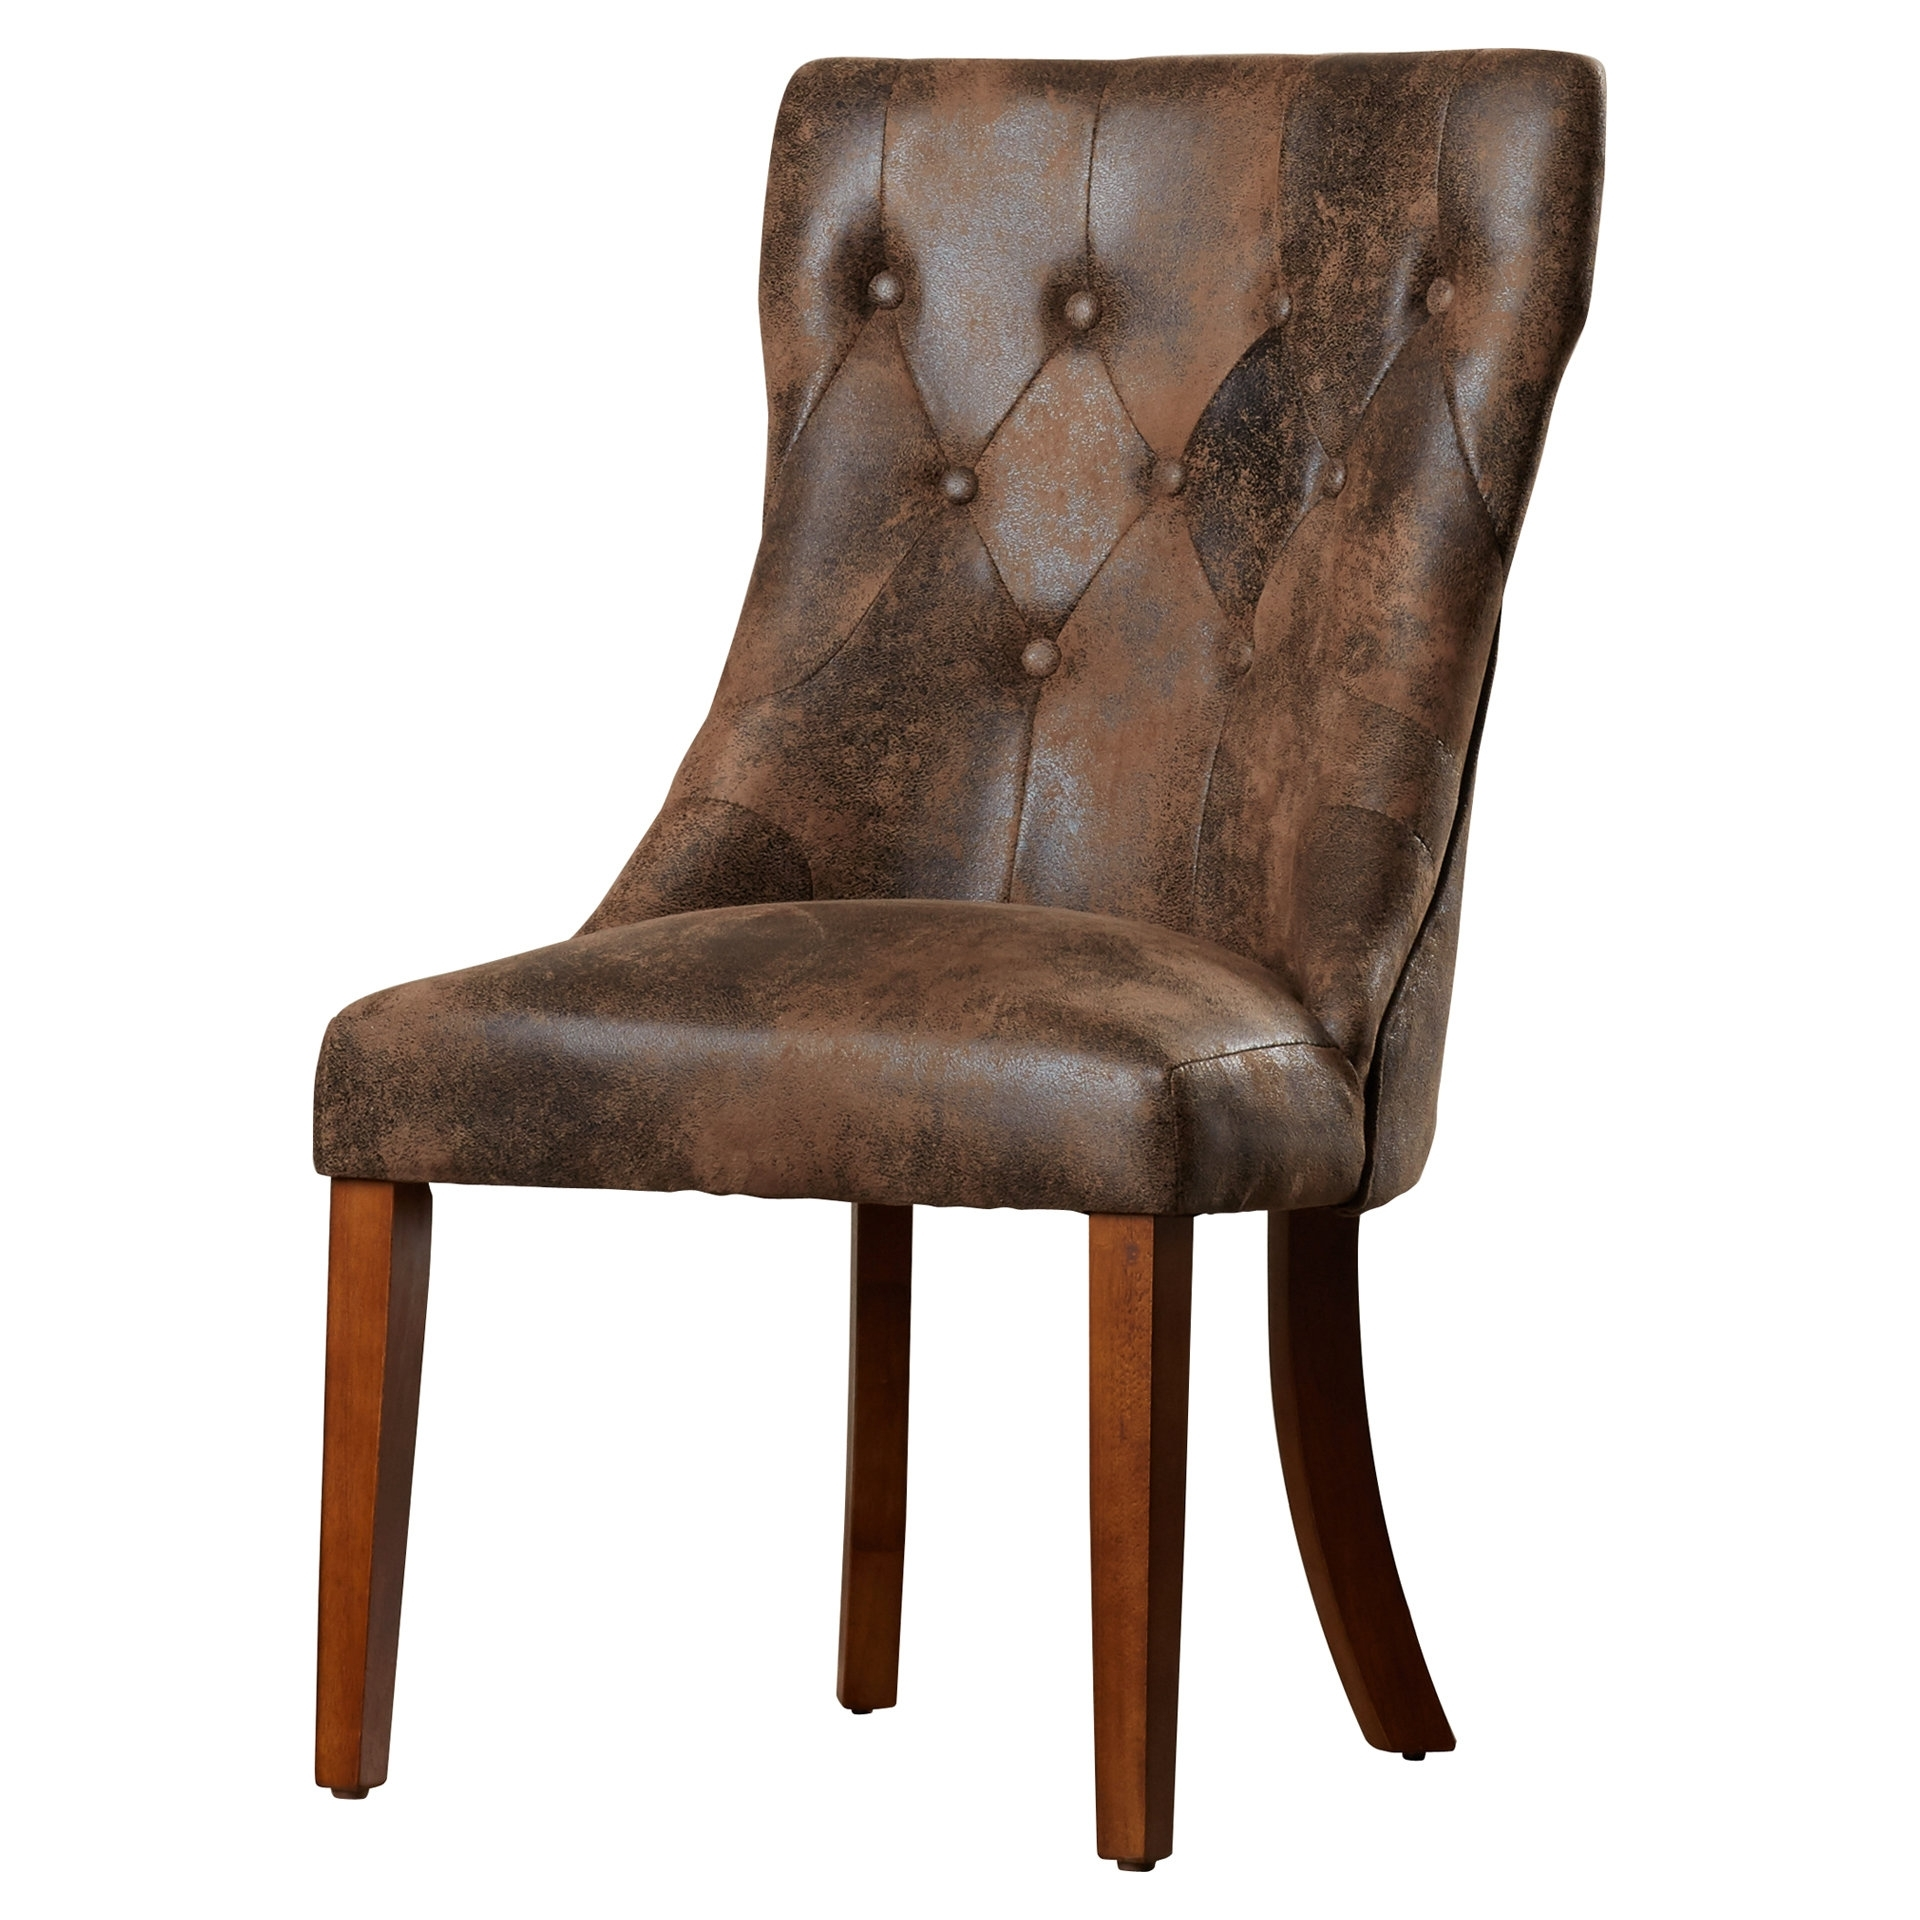 Most Popular Caira Upholstered Arm Chairs With Regard To Lark Manor Parfondeval Upholstered Dining Chair & Reviews (#7 of 20)